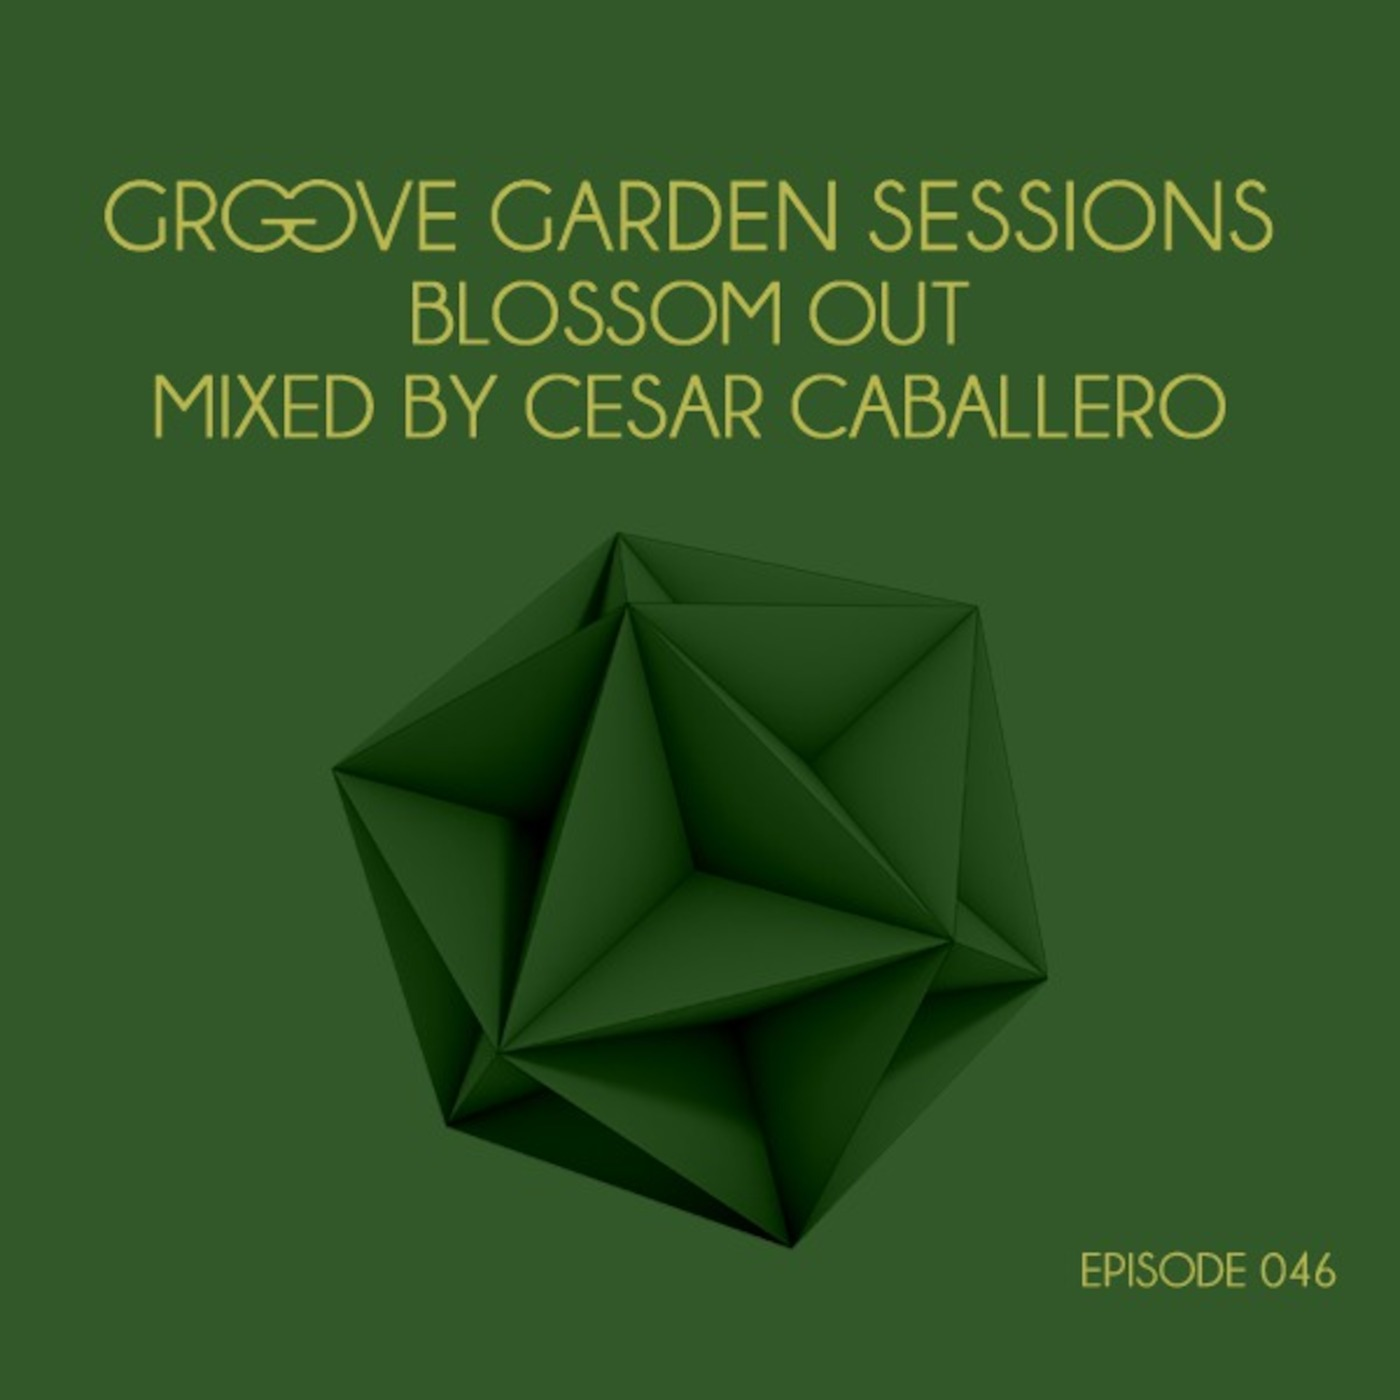 GROOVE GARDEN SESSIONS